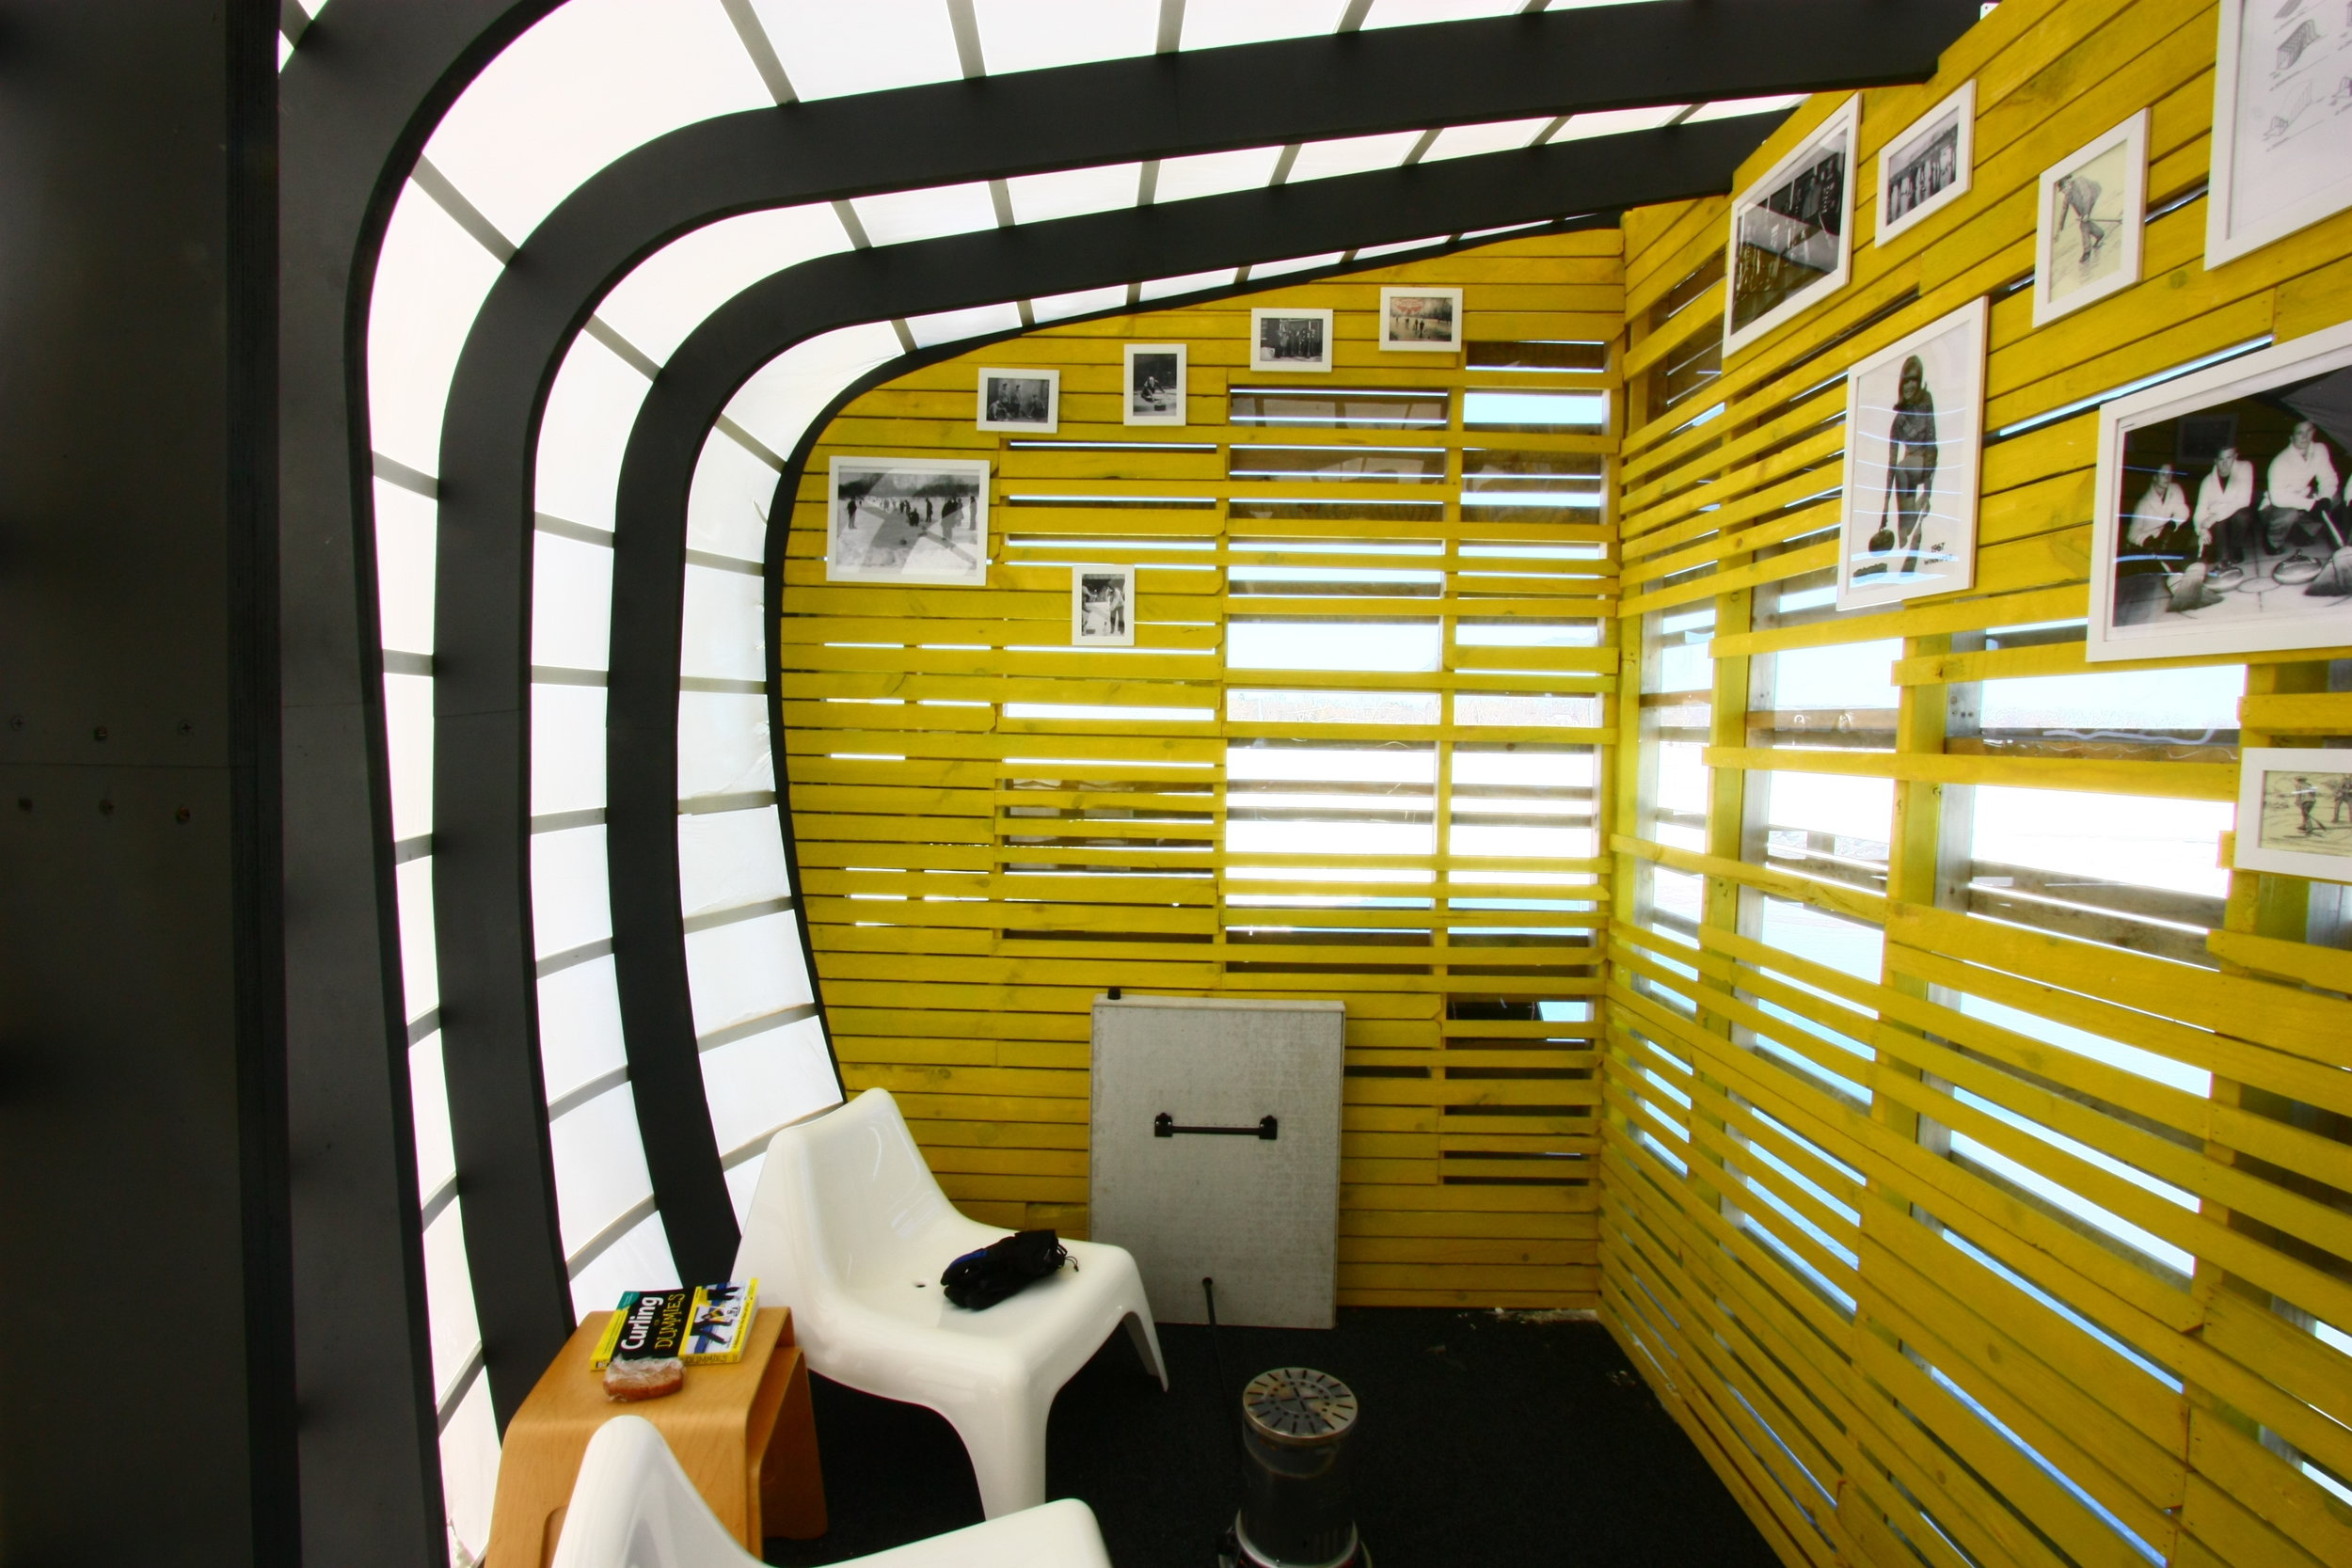 Warm interior of curling-themed art shanty designed by NewStudio Architecture